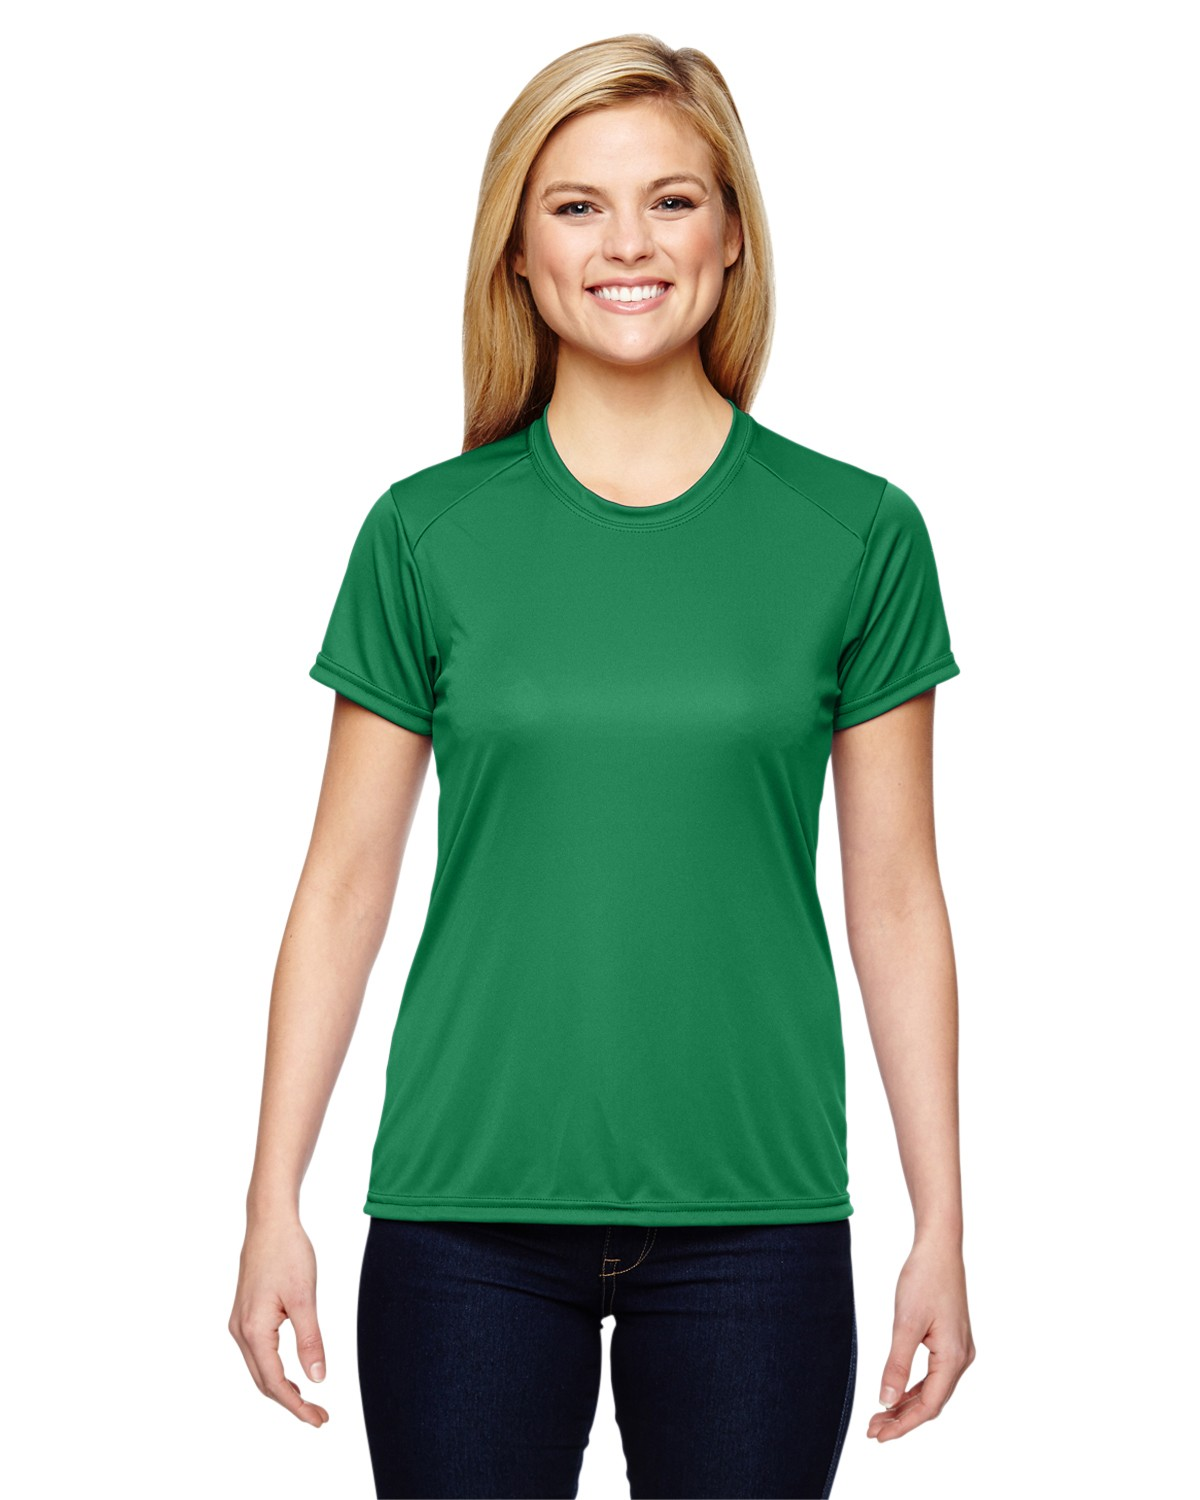 NW3201 A4 Apparel FOREST GREEN